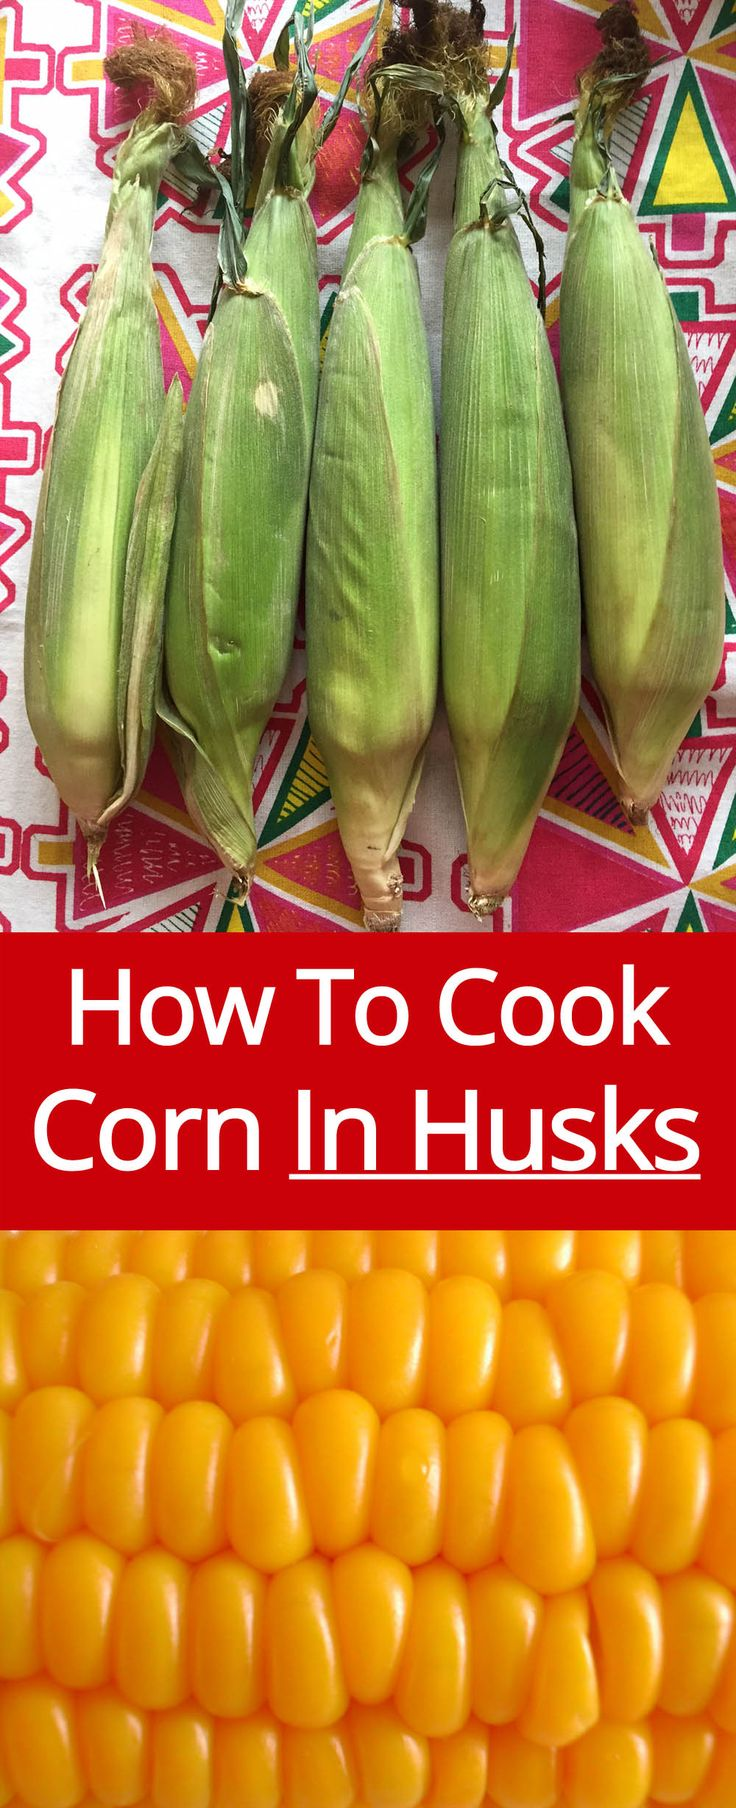 How To Cook Corn In The Husks - The Easiest Method Of Cooking Corn On The Cob!